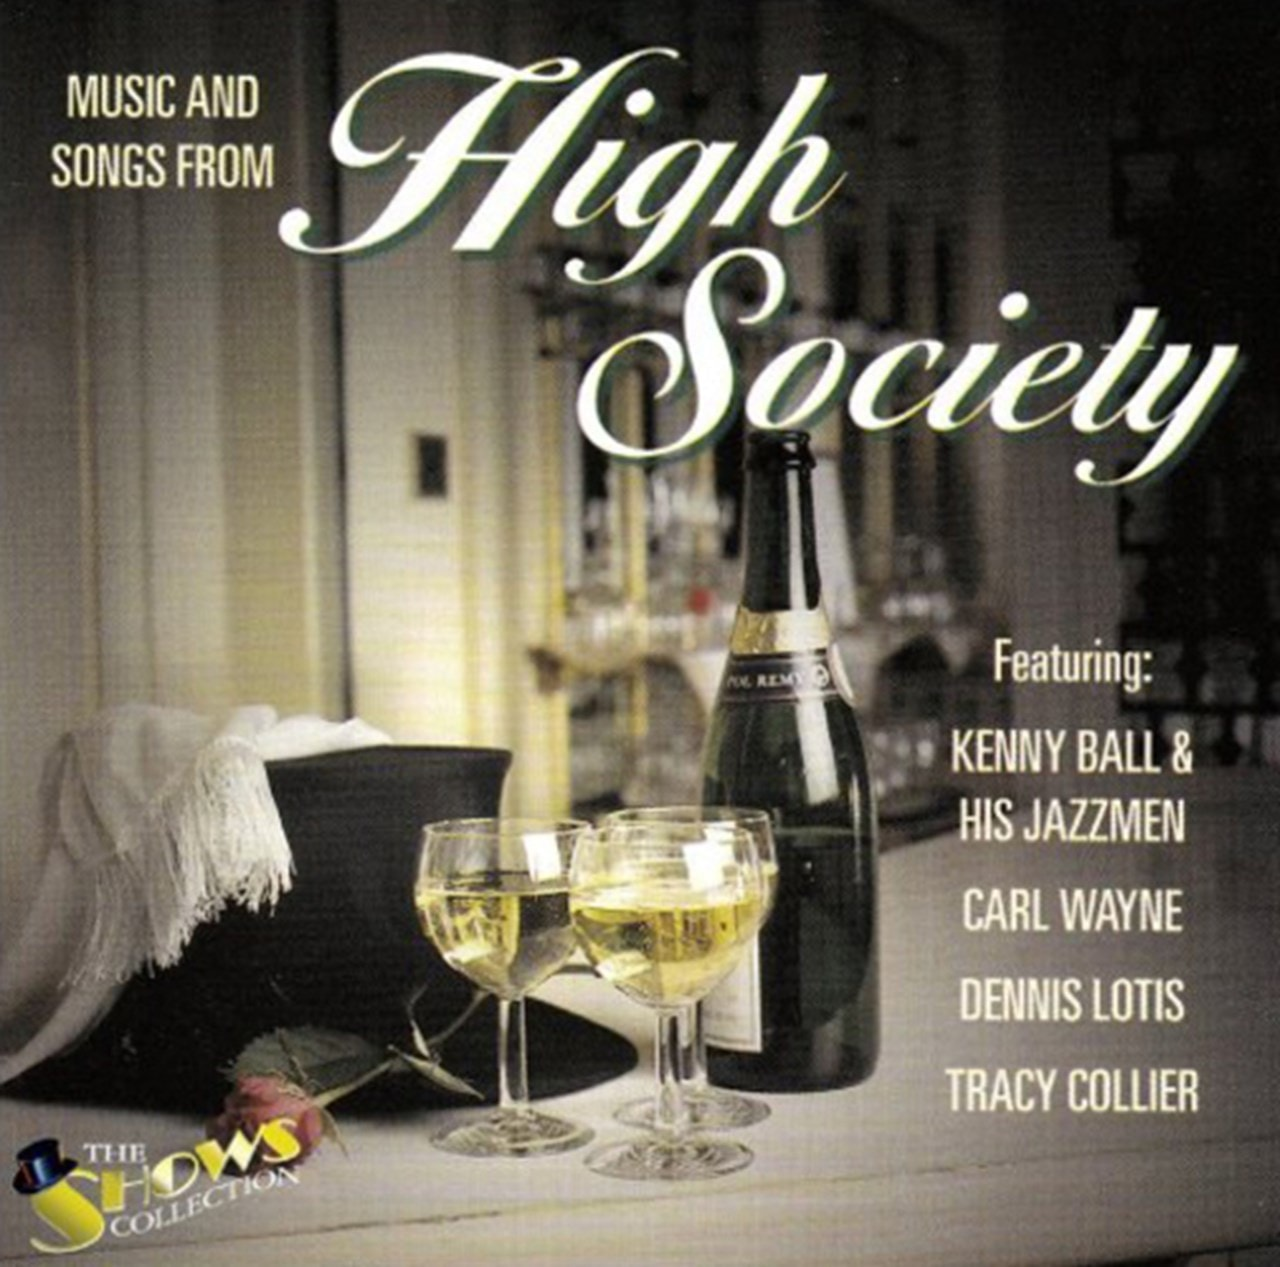 Music and Songs from High Society - 1